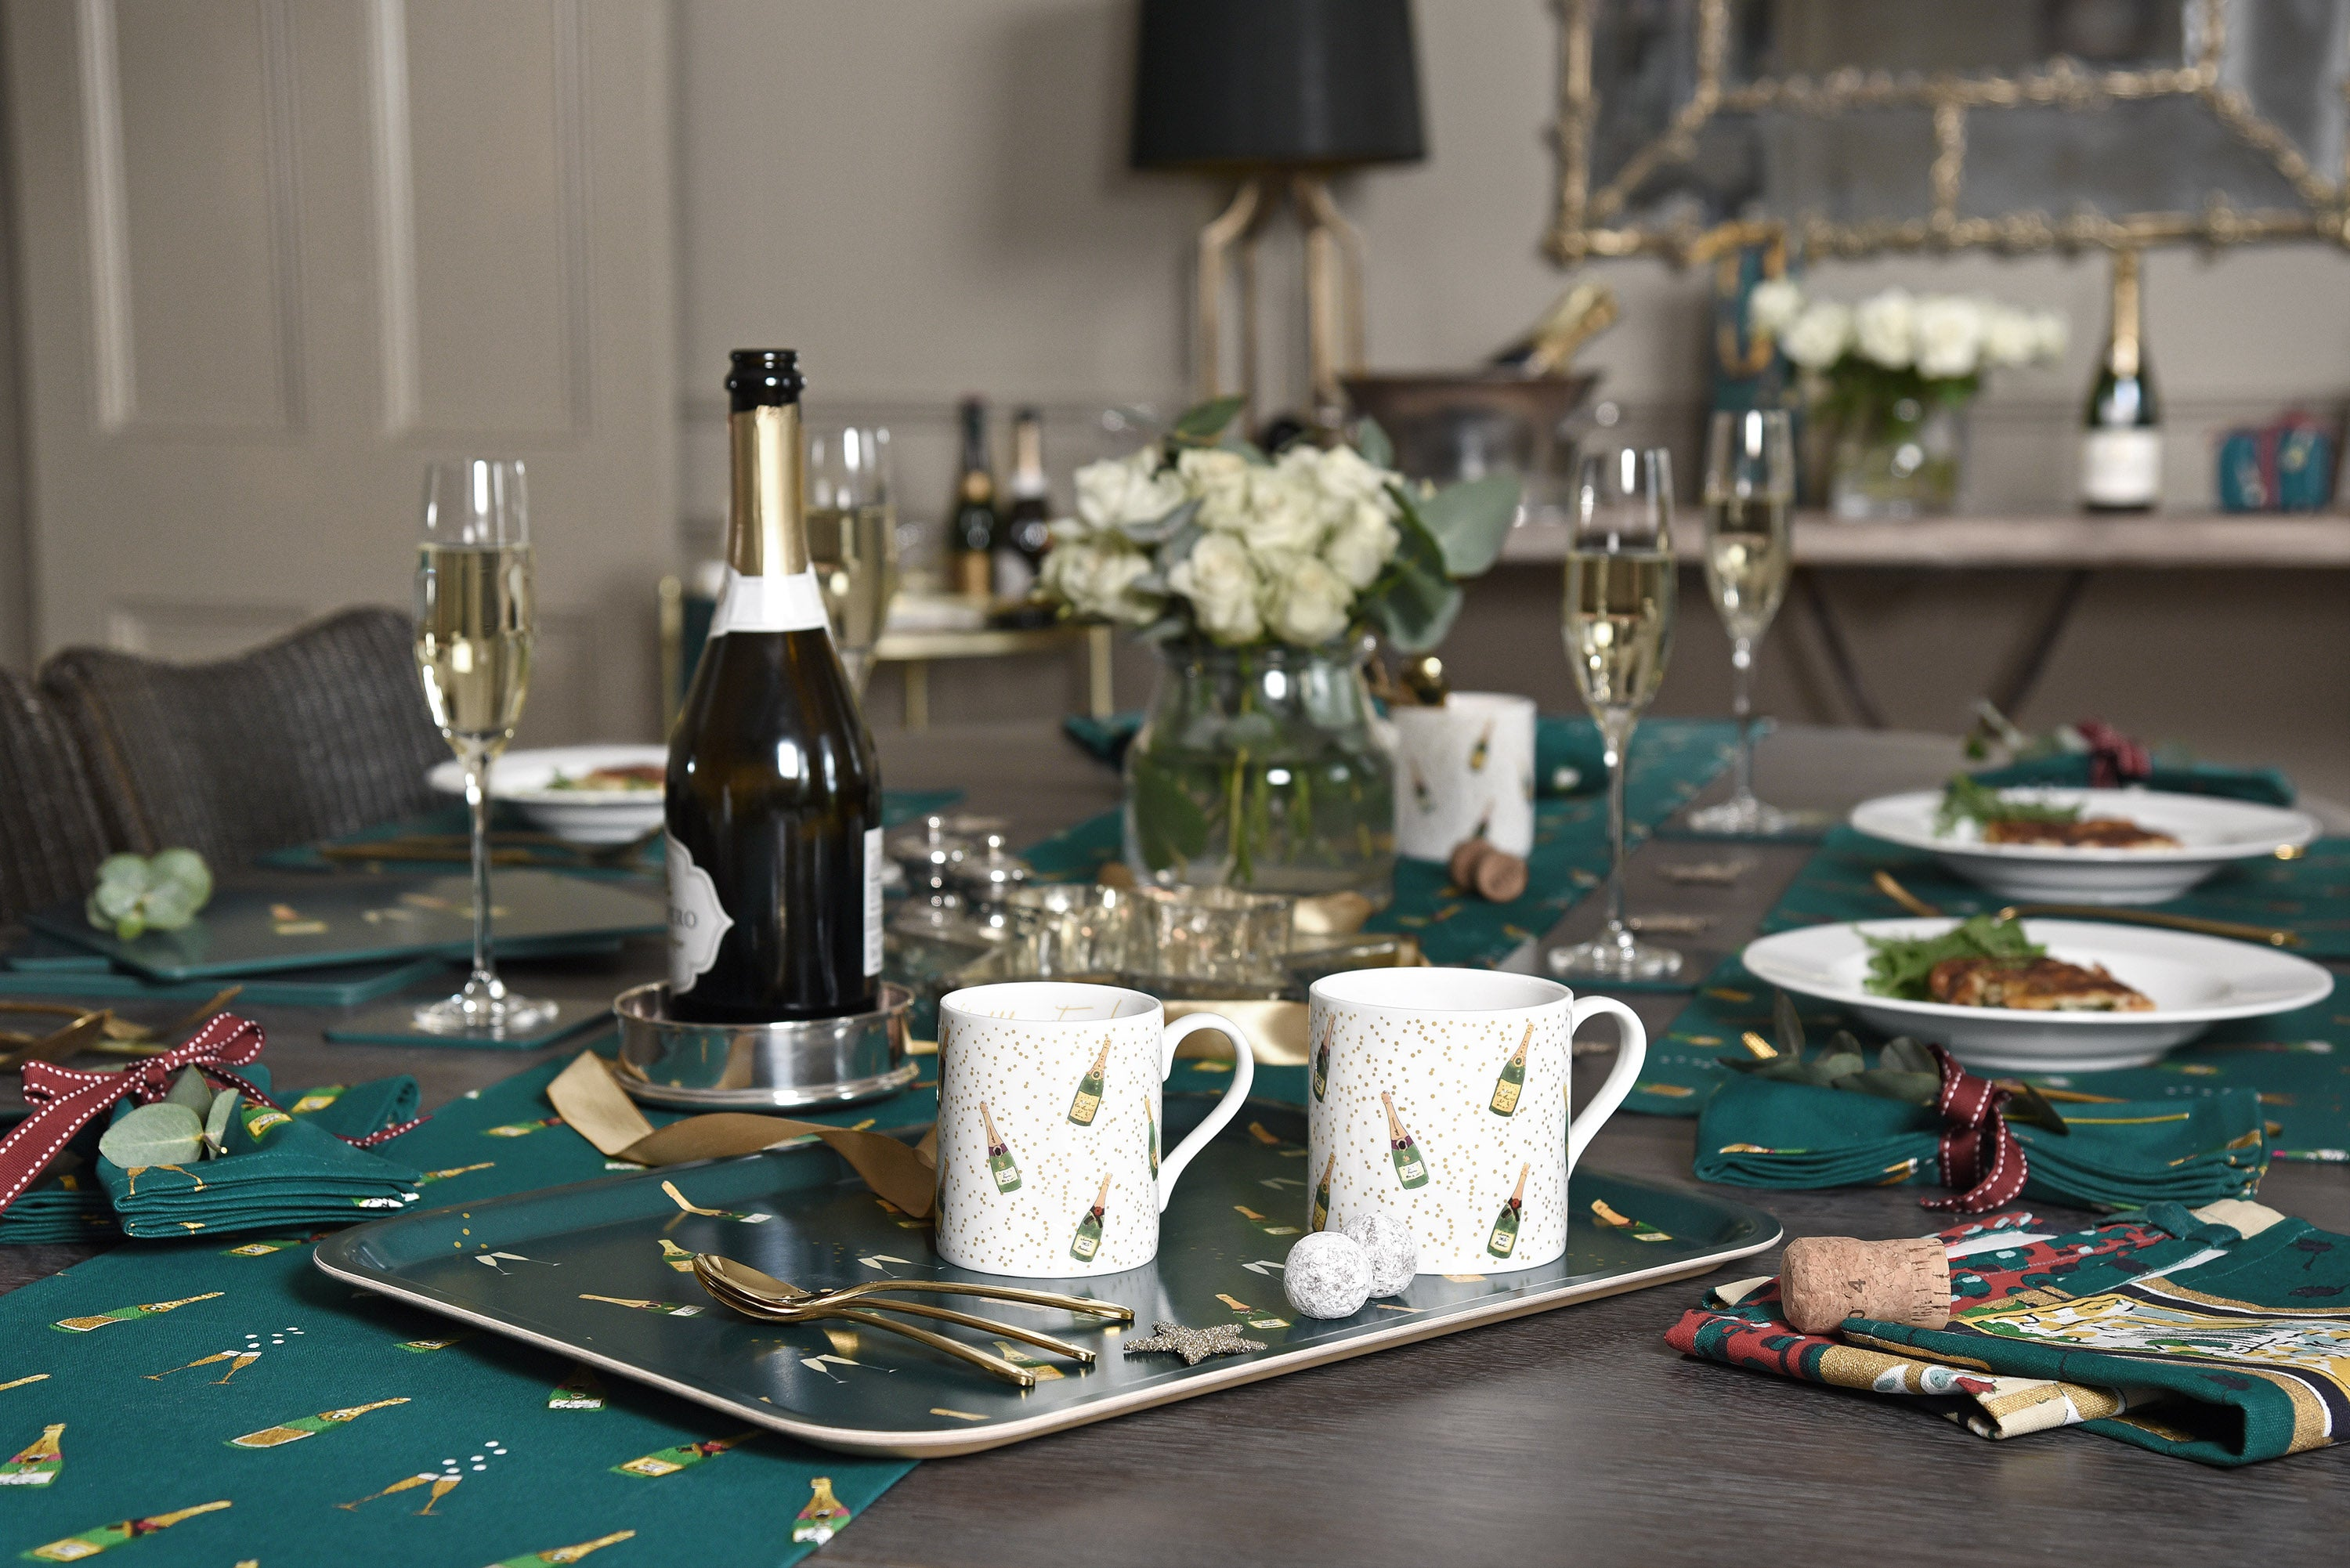 Bubbles & Fizz Table Setting by Sophie Allport